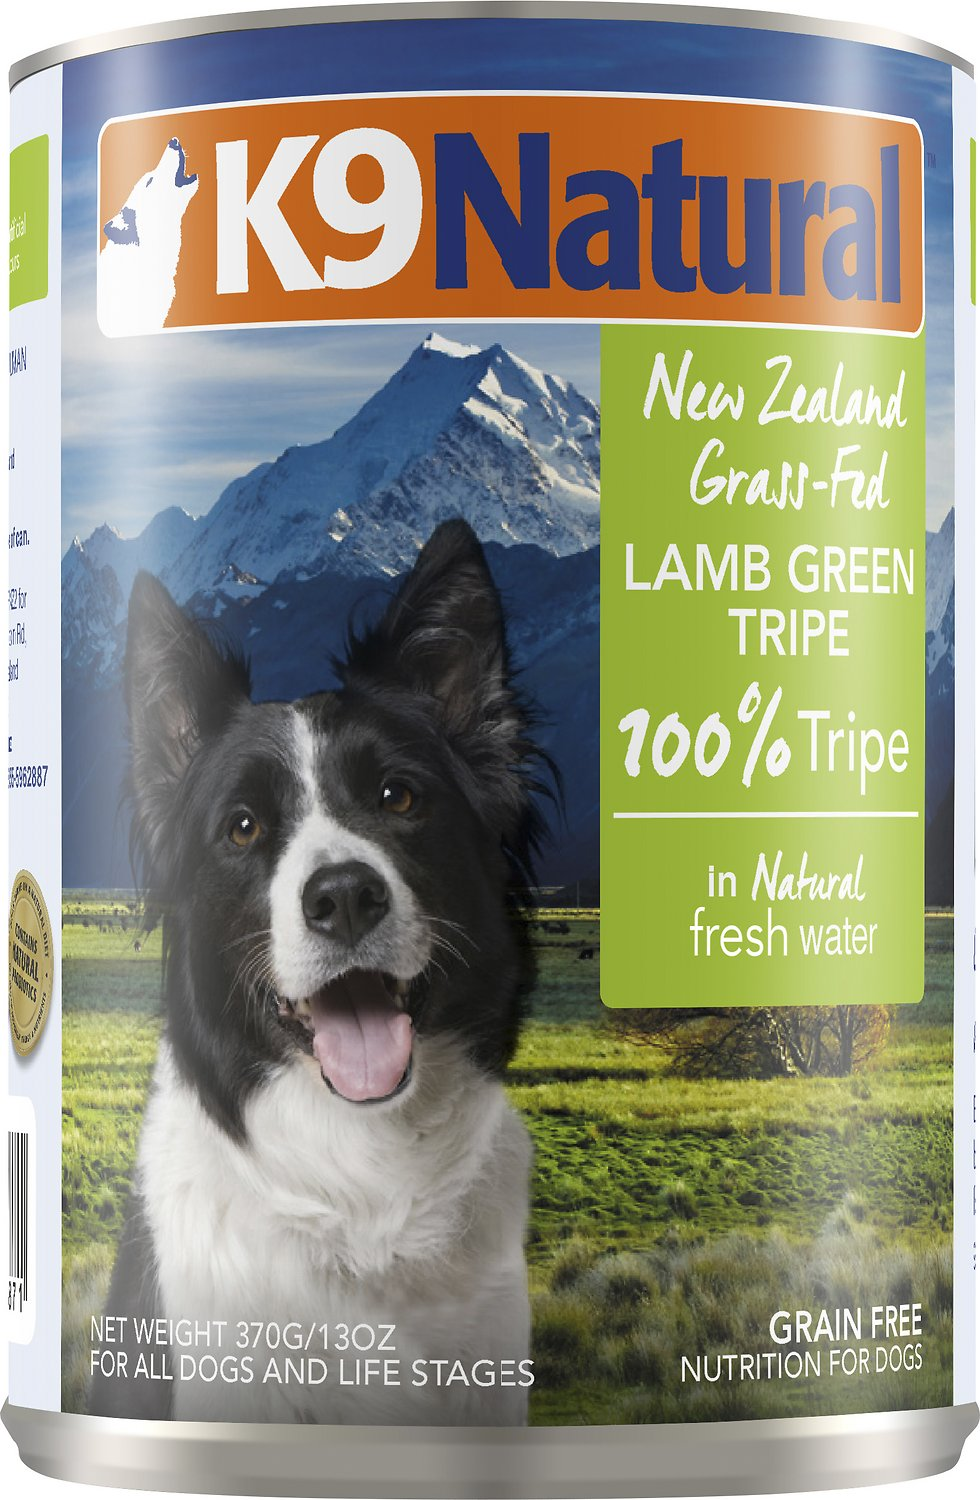 K9 Natural 100% Lamb Green Tripe Grain-Free Canned Dog Food, 13-oz